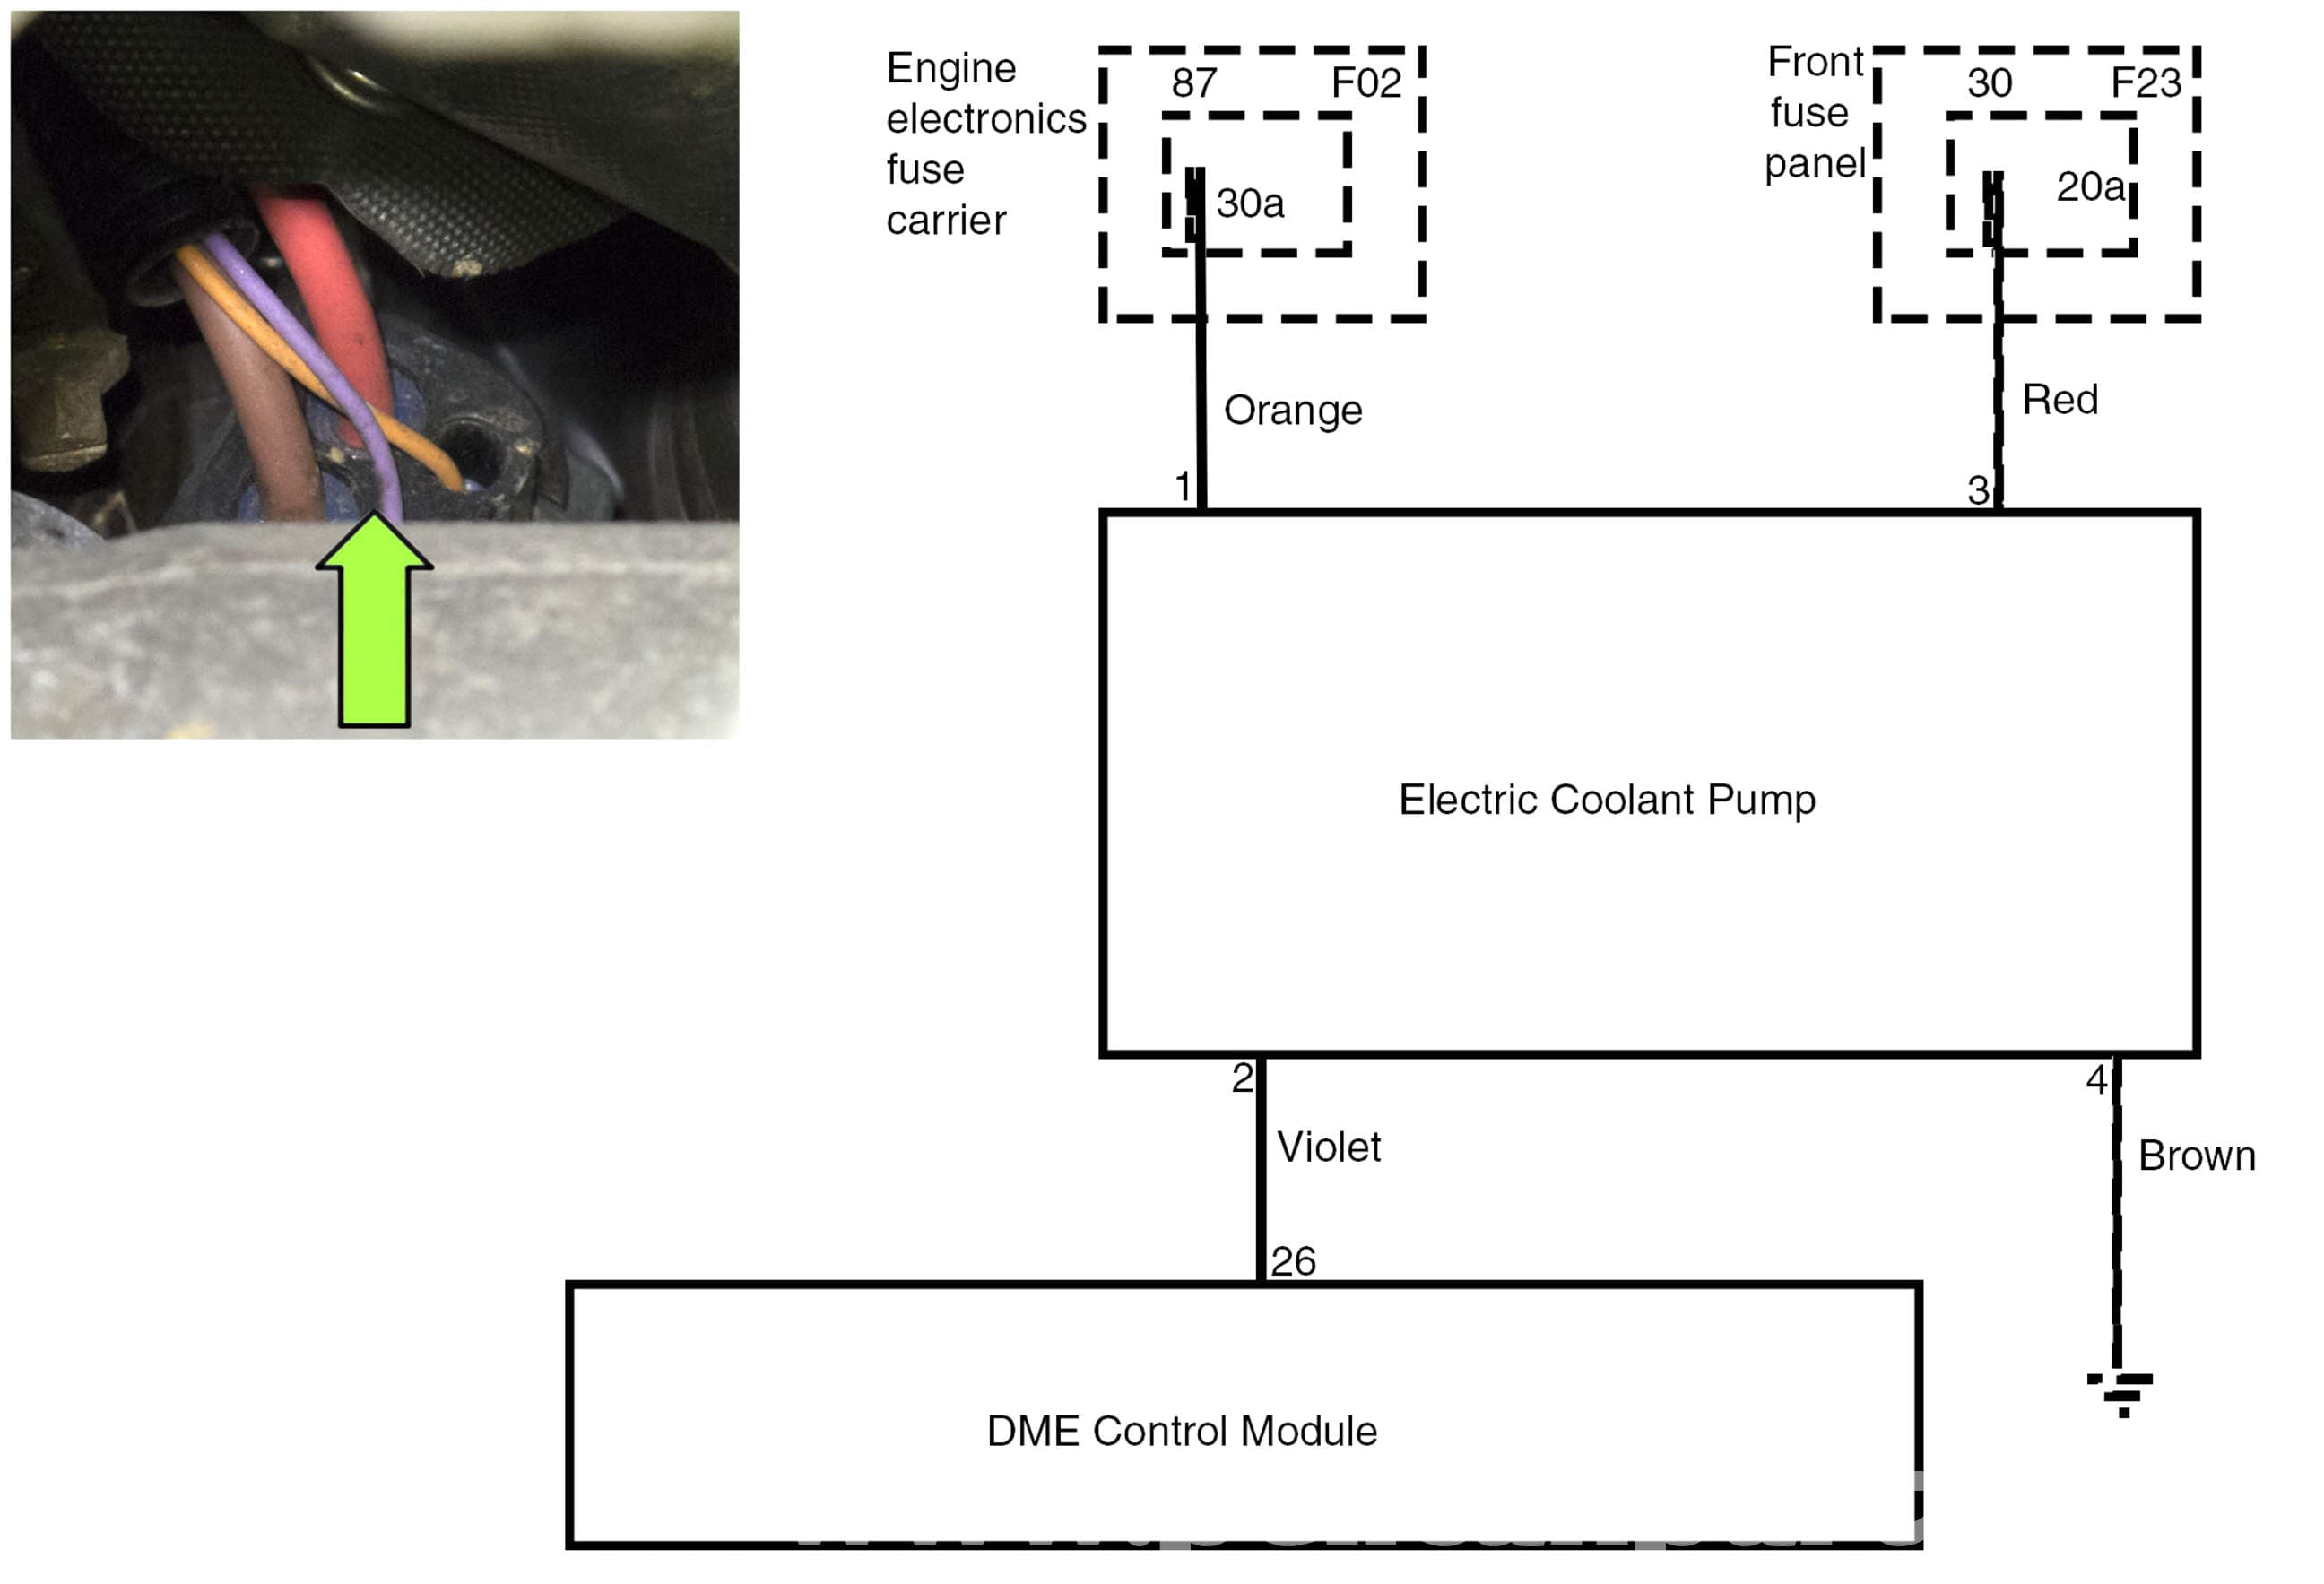 bmw fuel pump diagram madcomics 2013 bmw 328i fuse box diagram  madcomics 2013 bmw 328i fuse box diagram